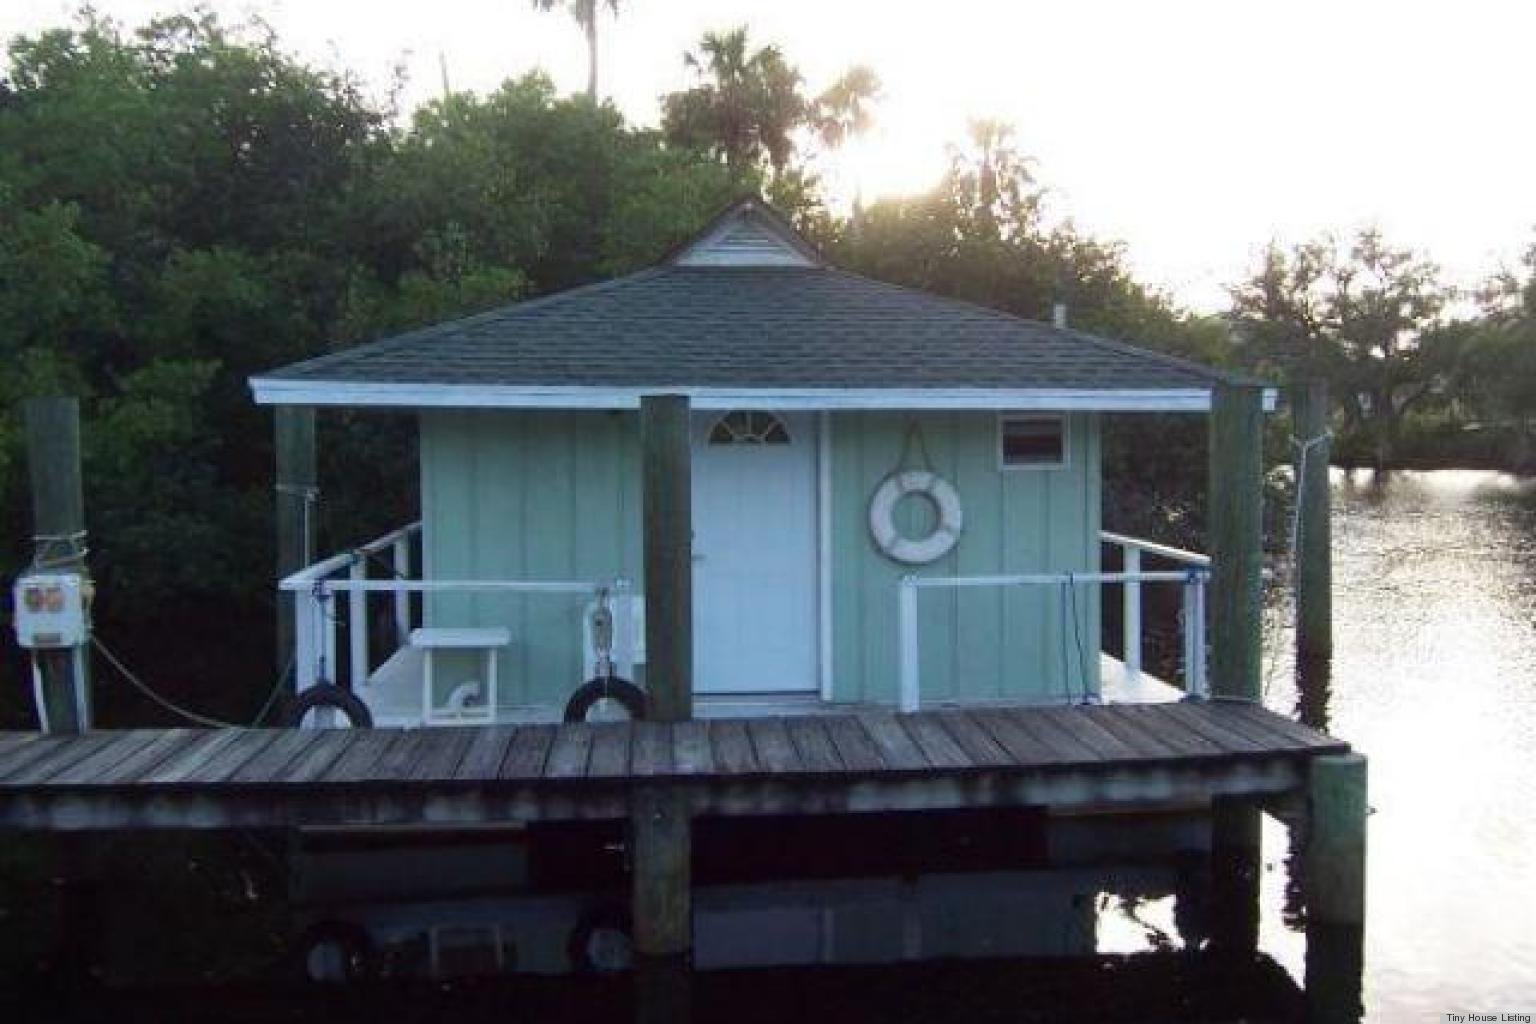 Pristine Huffpost Floating Bungalow Sale Offers Exotic Tiny Home Living America Tiny Houses Builders Floating Bungalow Florida Tiny Houses Sale Offers Exotic Tiny Home Living Tampa Florida curbed Tiny Houses In Florida